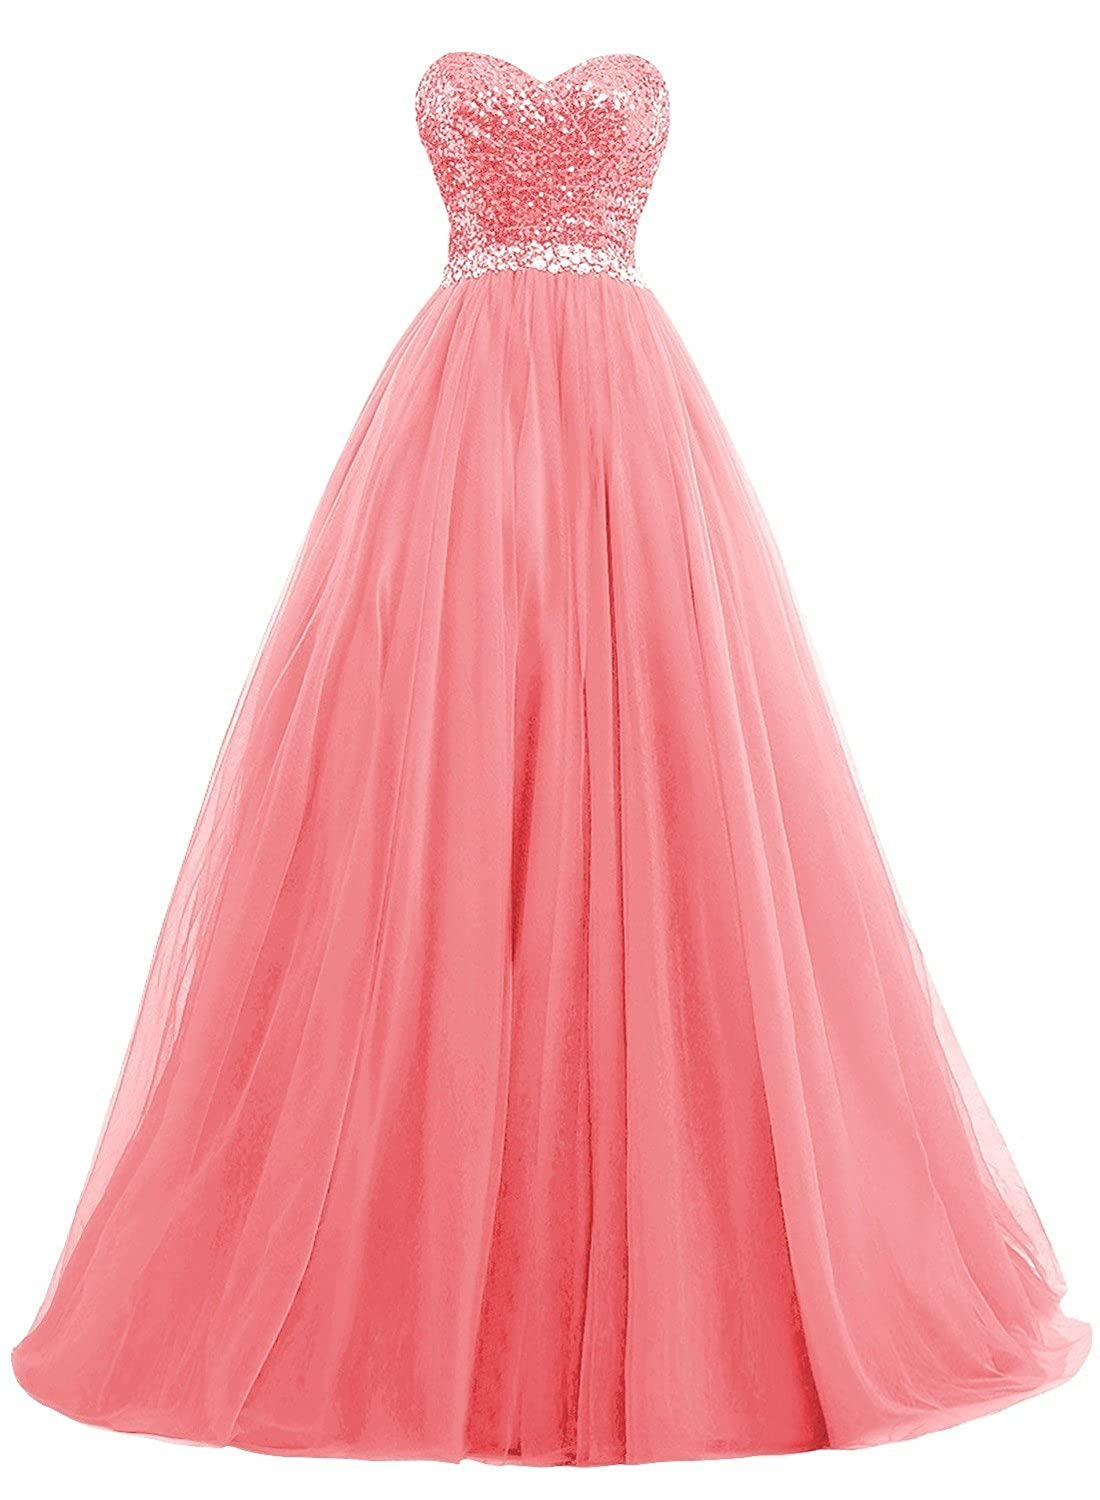 Coral Fanciest Women's Sweet 16 Tulle Sequin Ball Gown Prom Dresses for Quinceanera